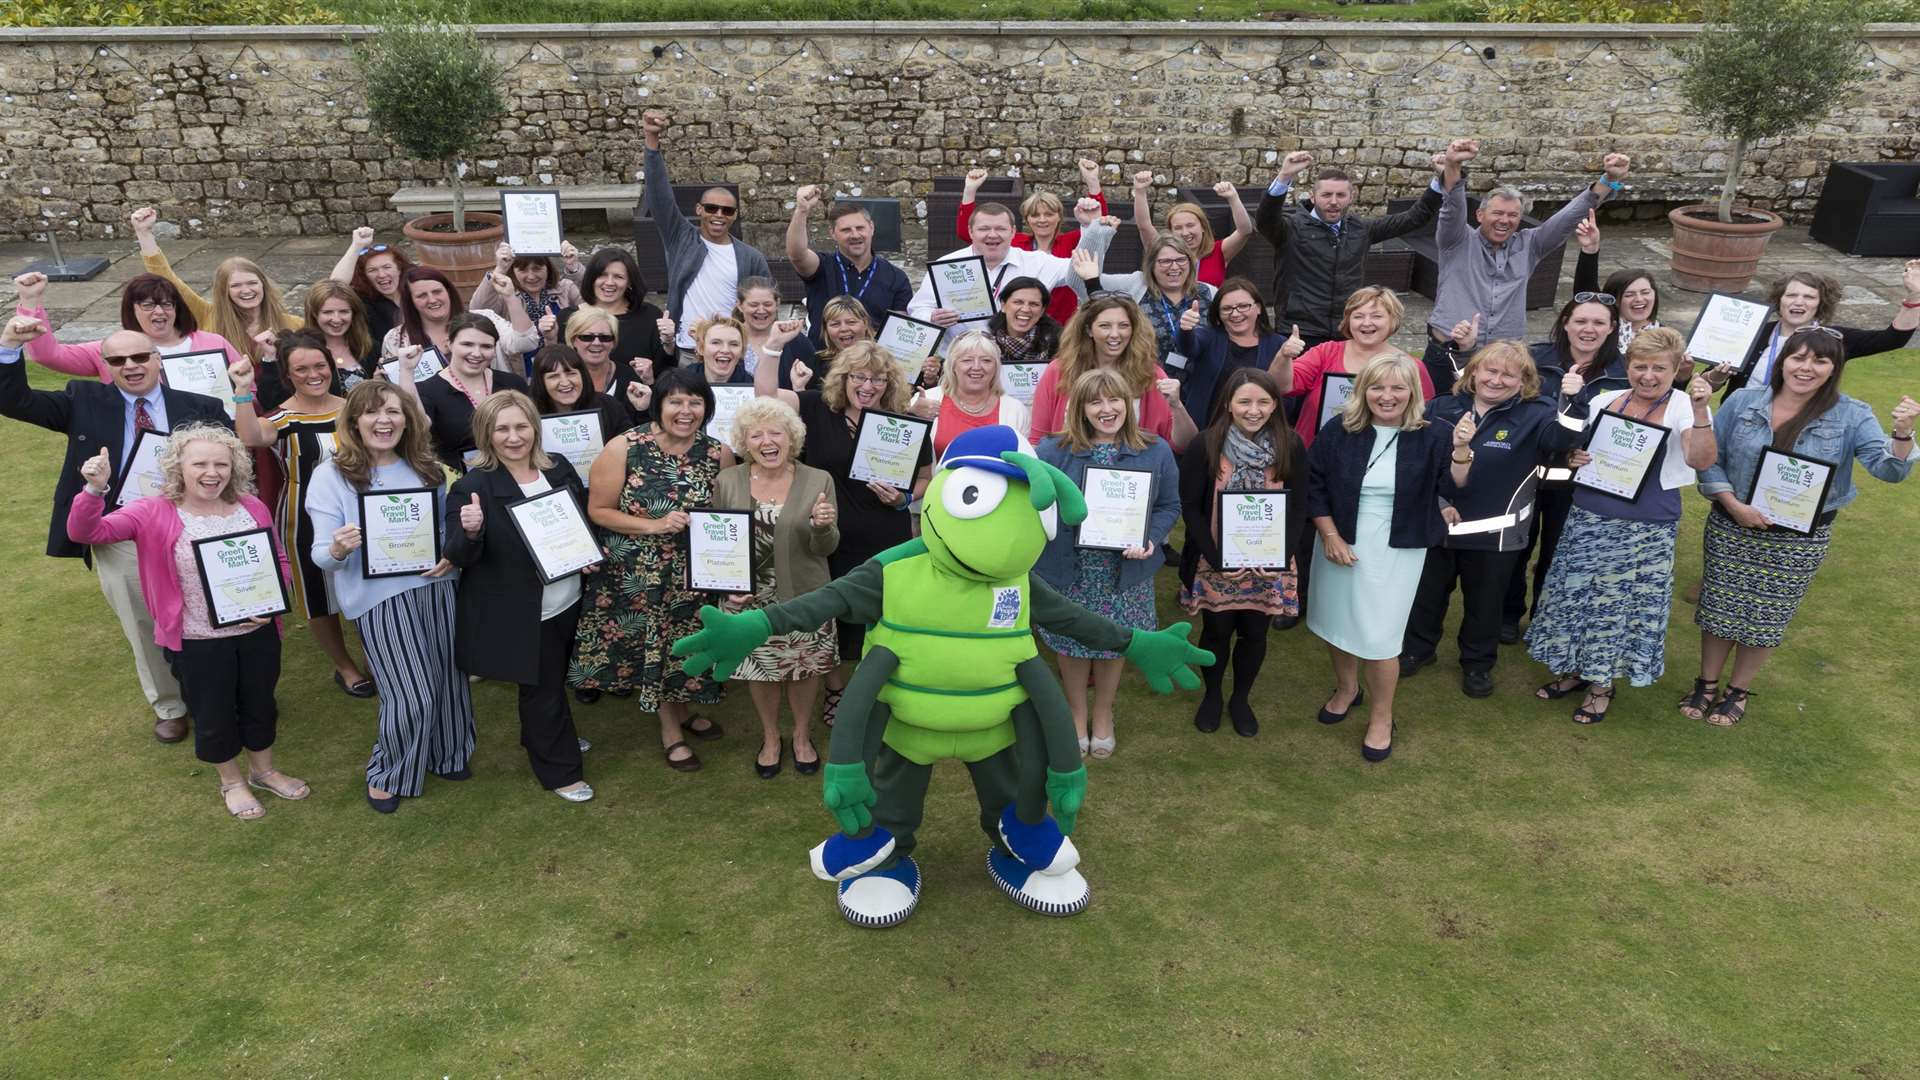 Green Travel Mark Award winners 2017 with supporters at Leeds Castle, Maidstone.